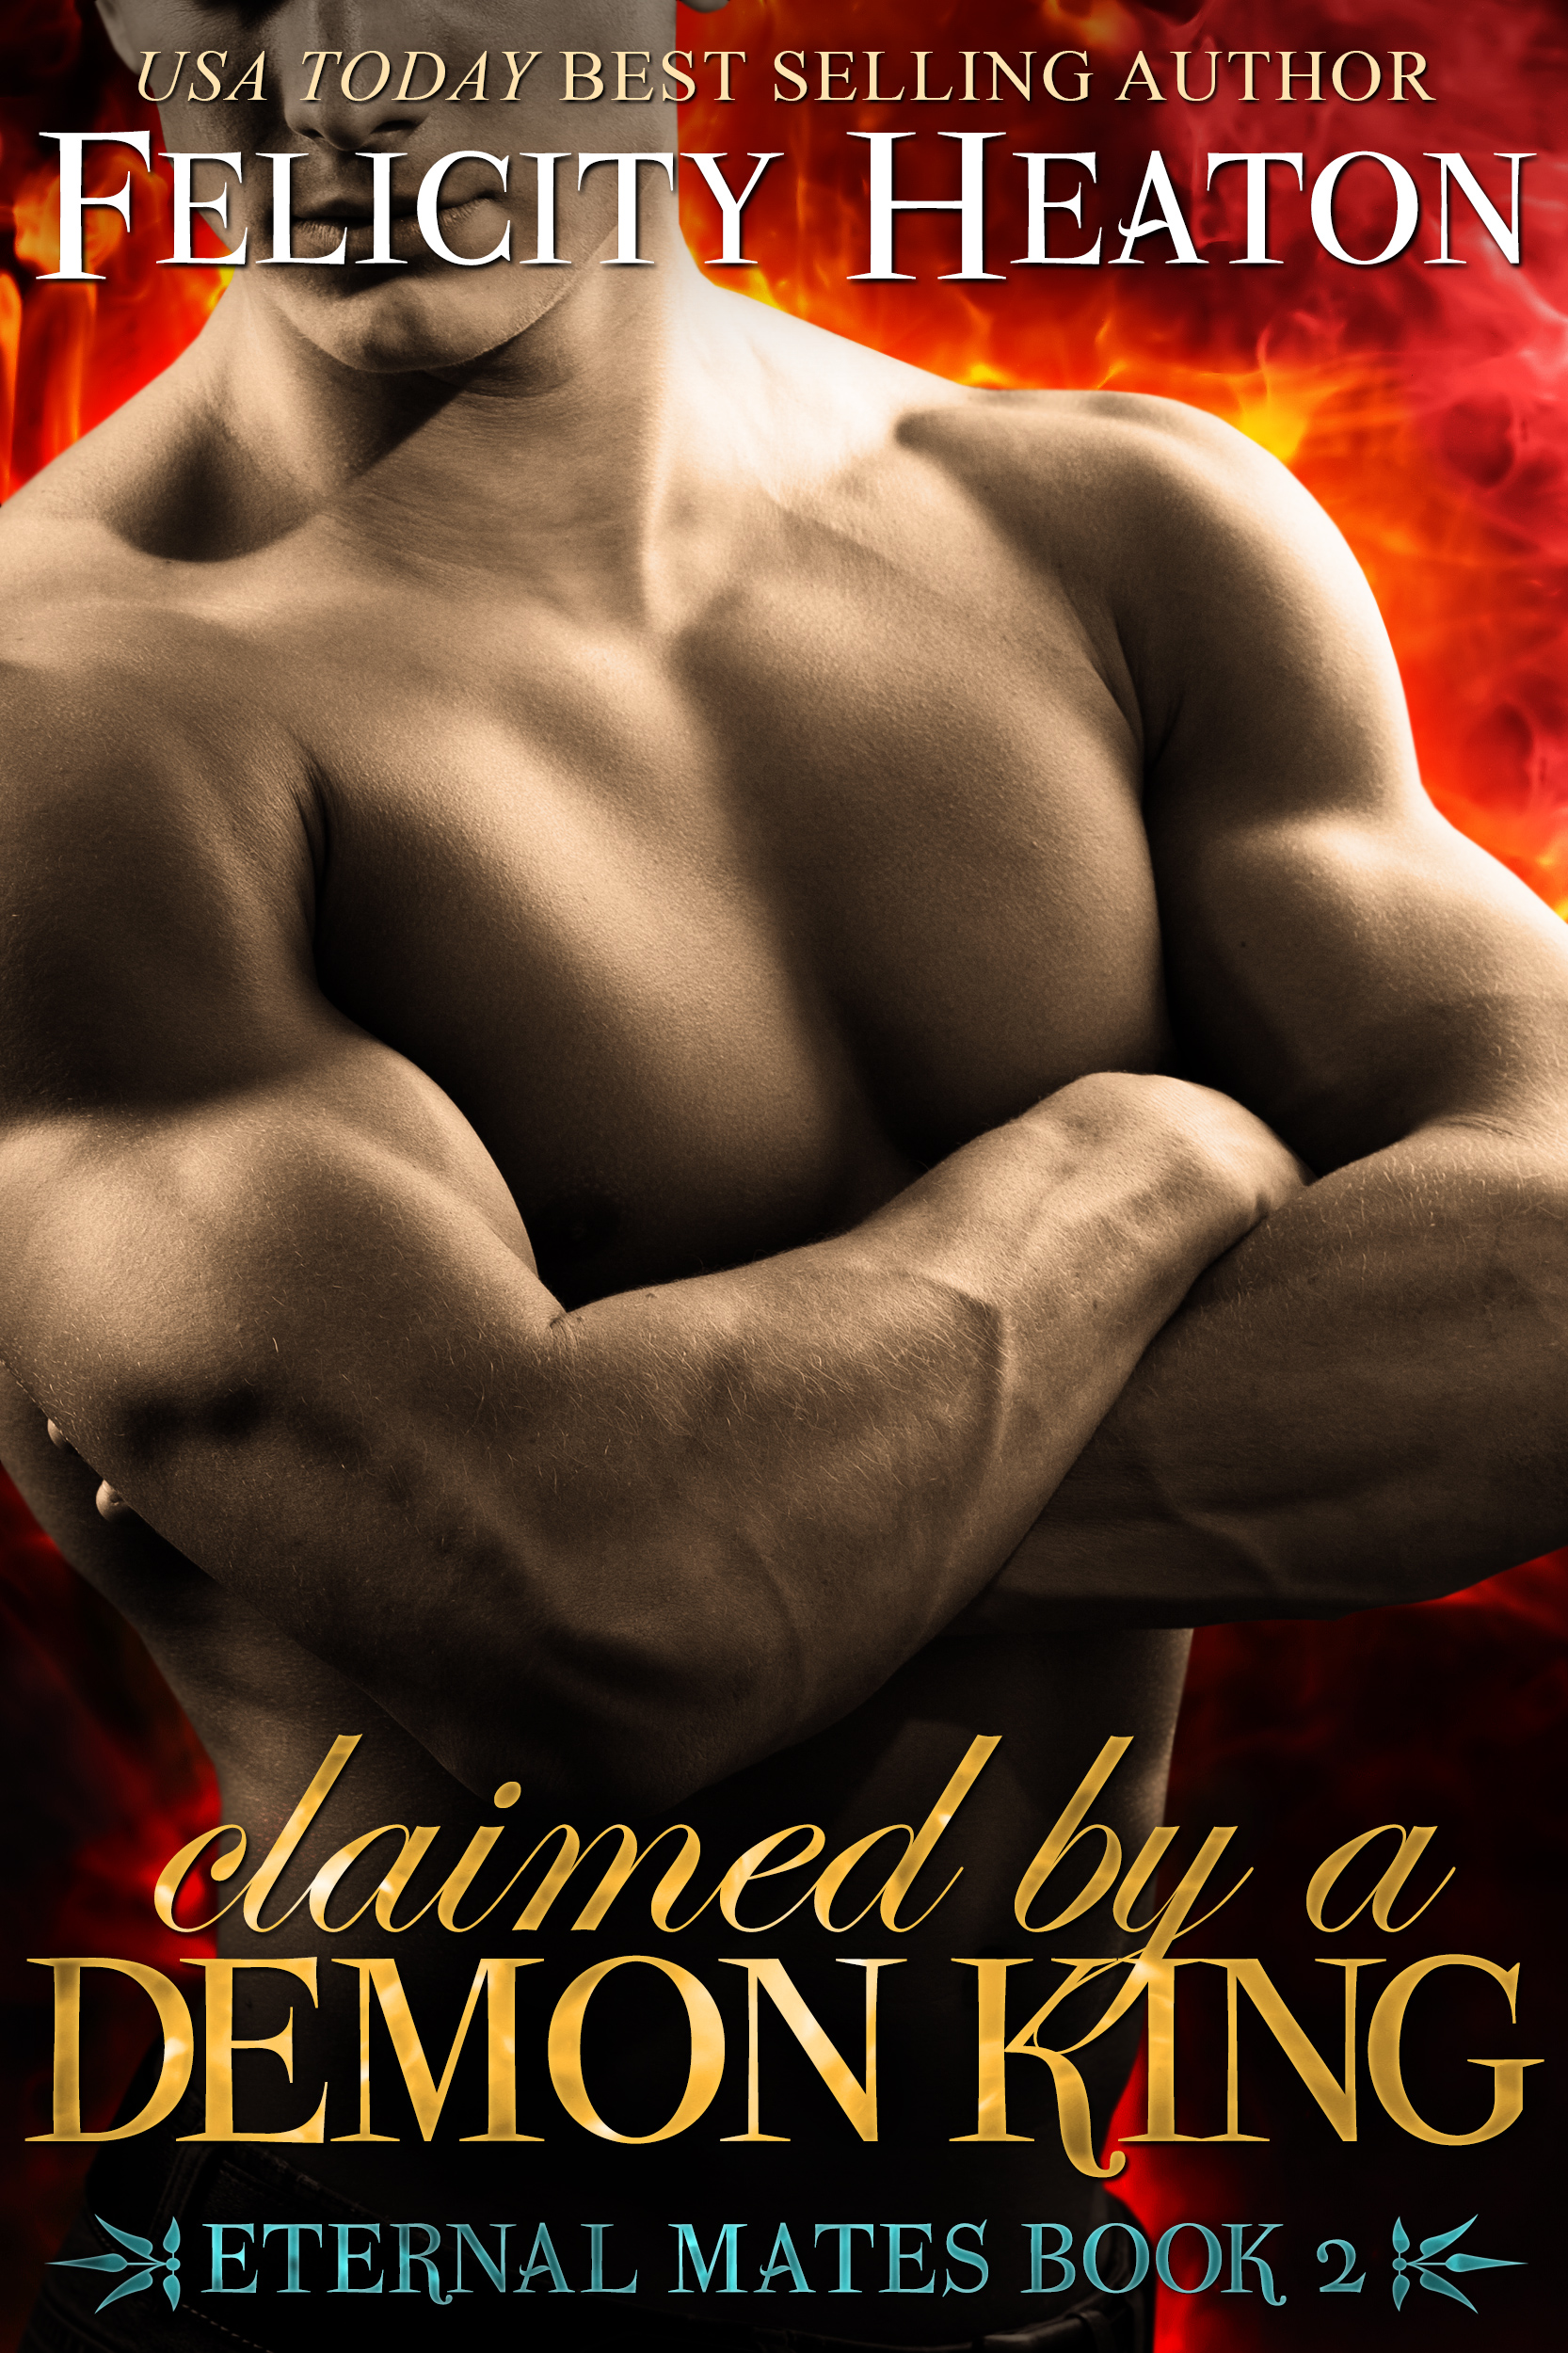 Felicity Heaton - Claimed by a Demon King (Eternal Mates Romance Series Book 2)